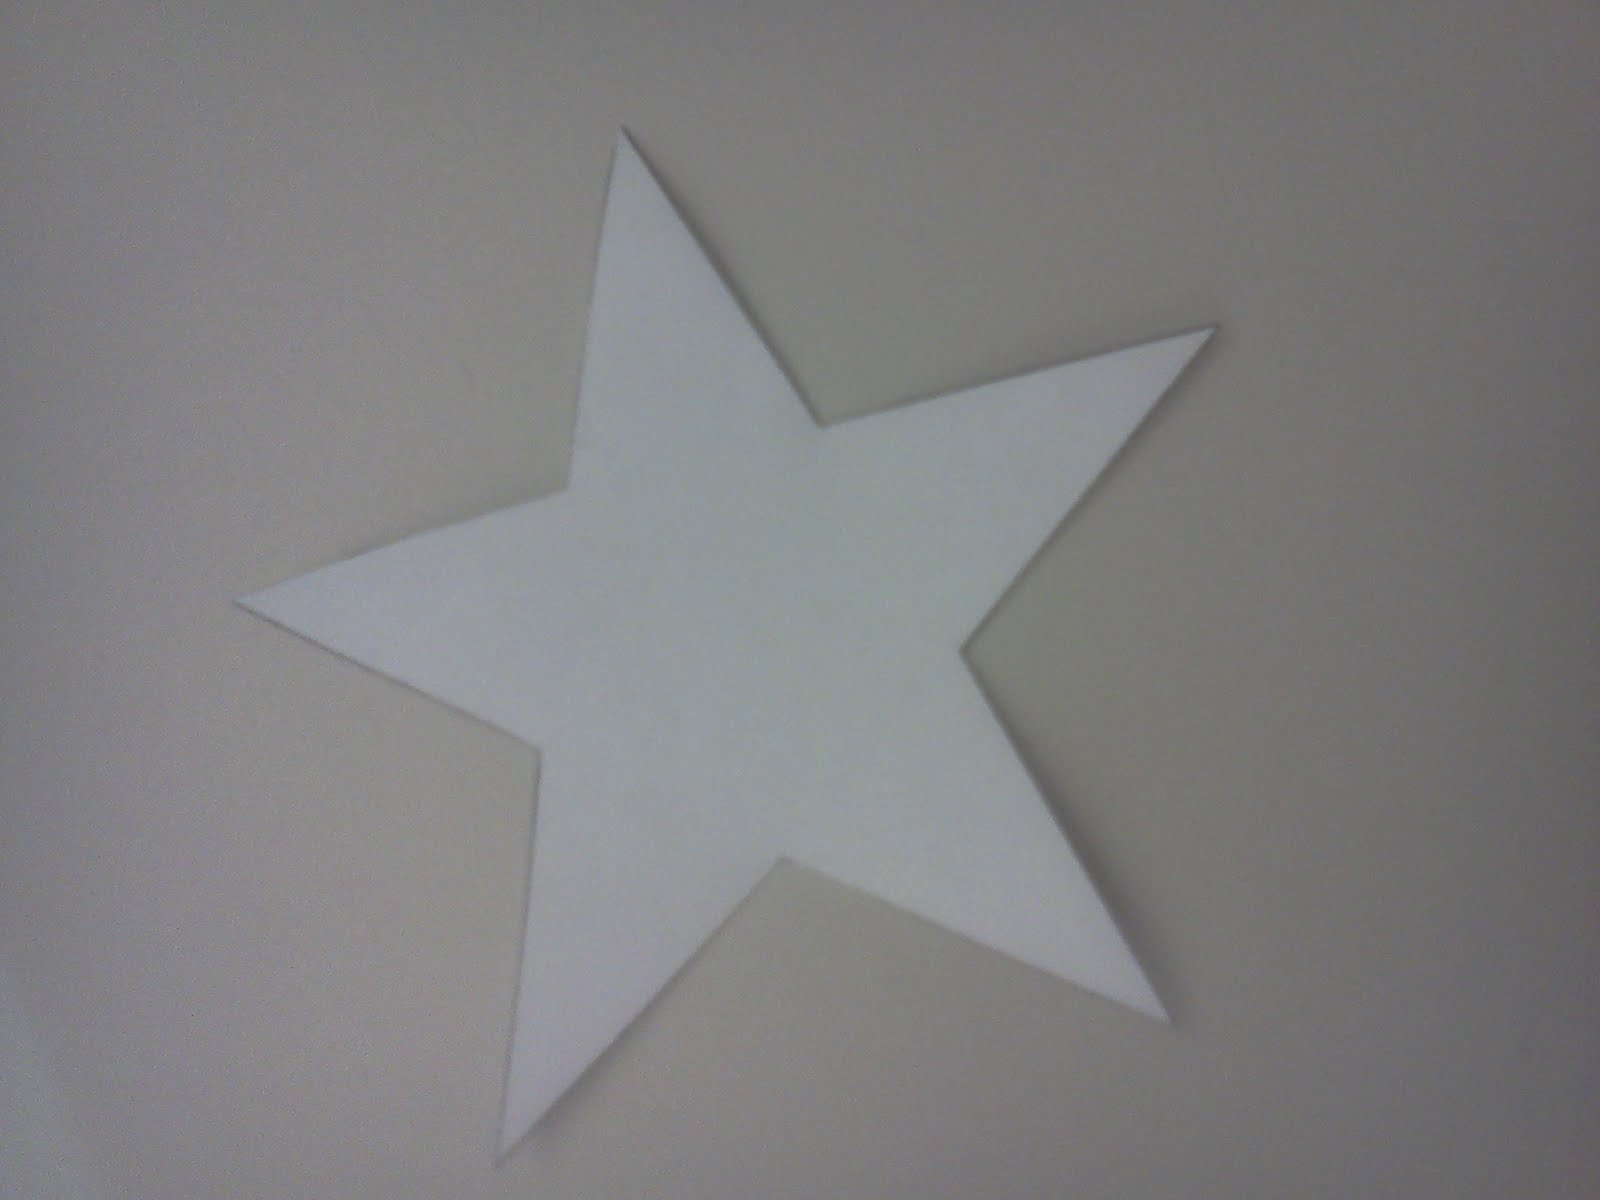 Creative Creations How To Make A 3d Star Out Of Cardboard